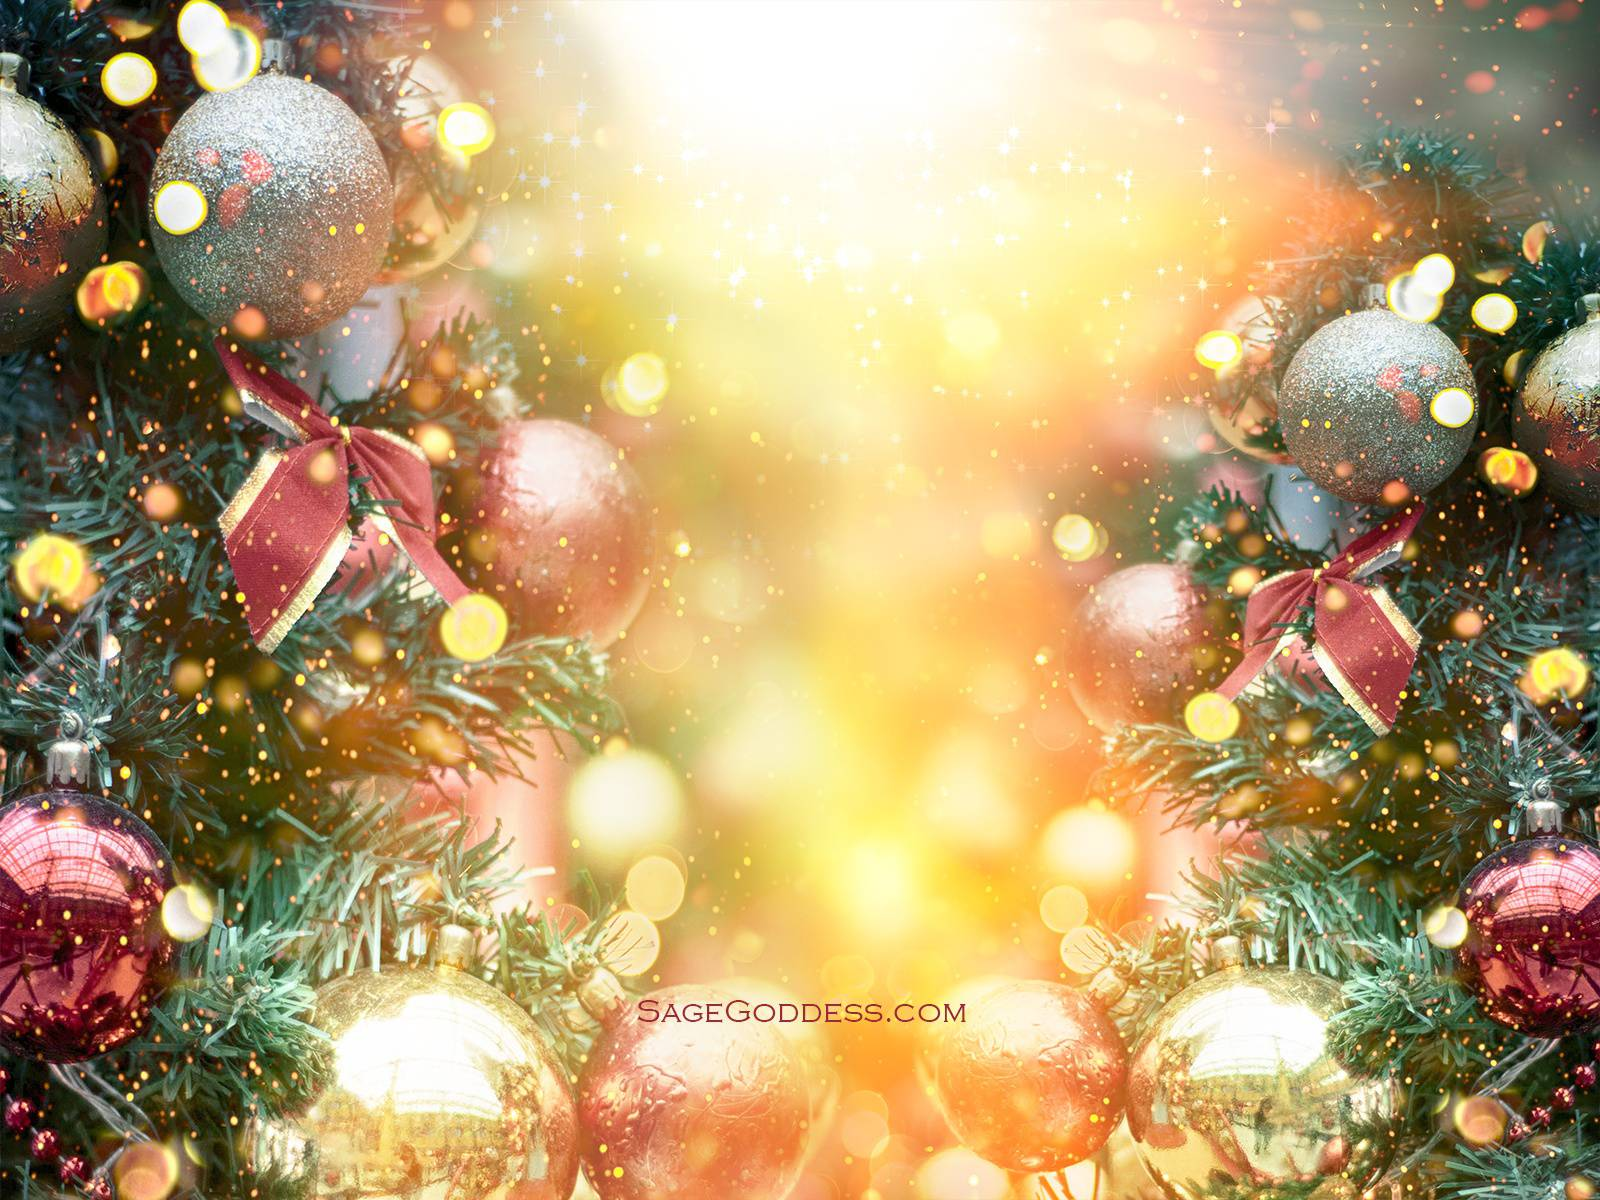 Christmas Free Images.Free Custom Sage Goddess Downloadable Christmas Screensaver